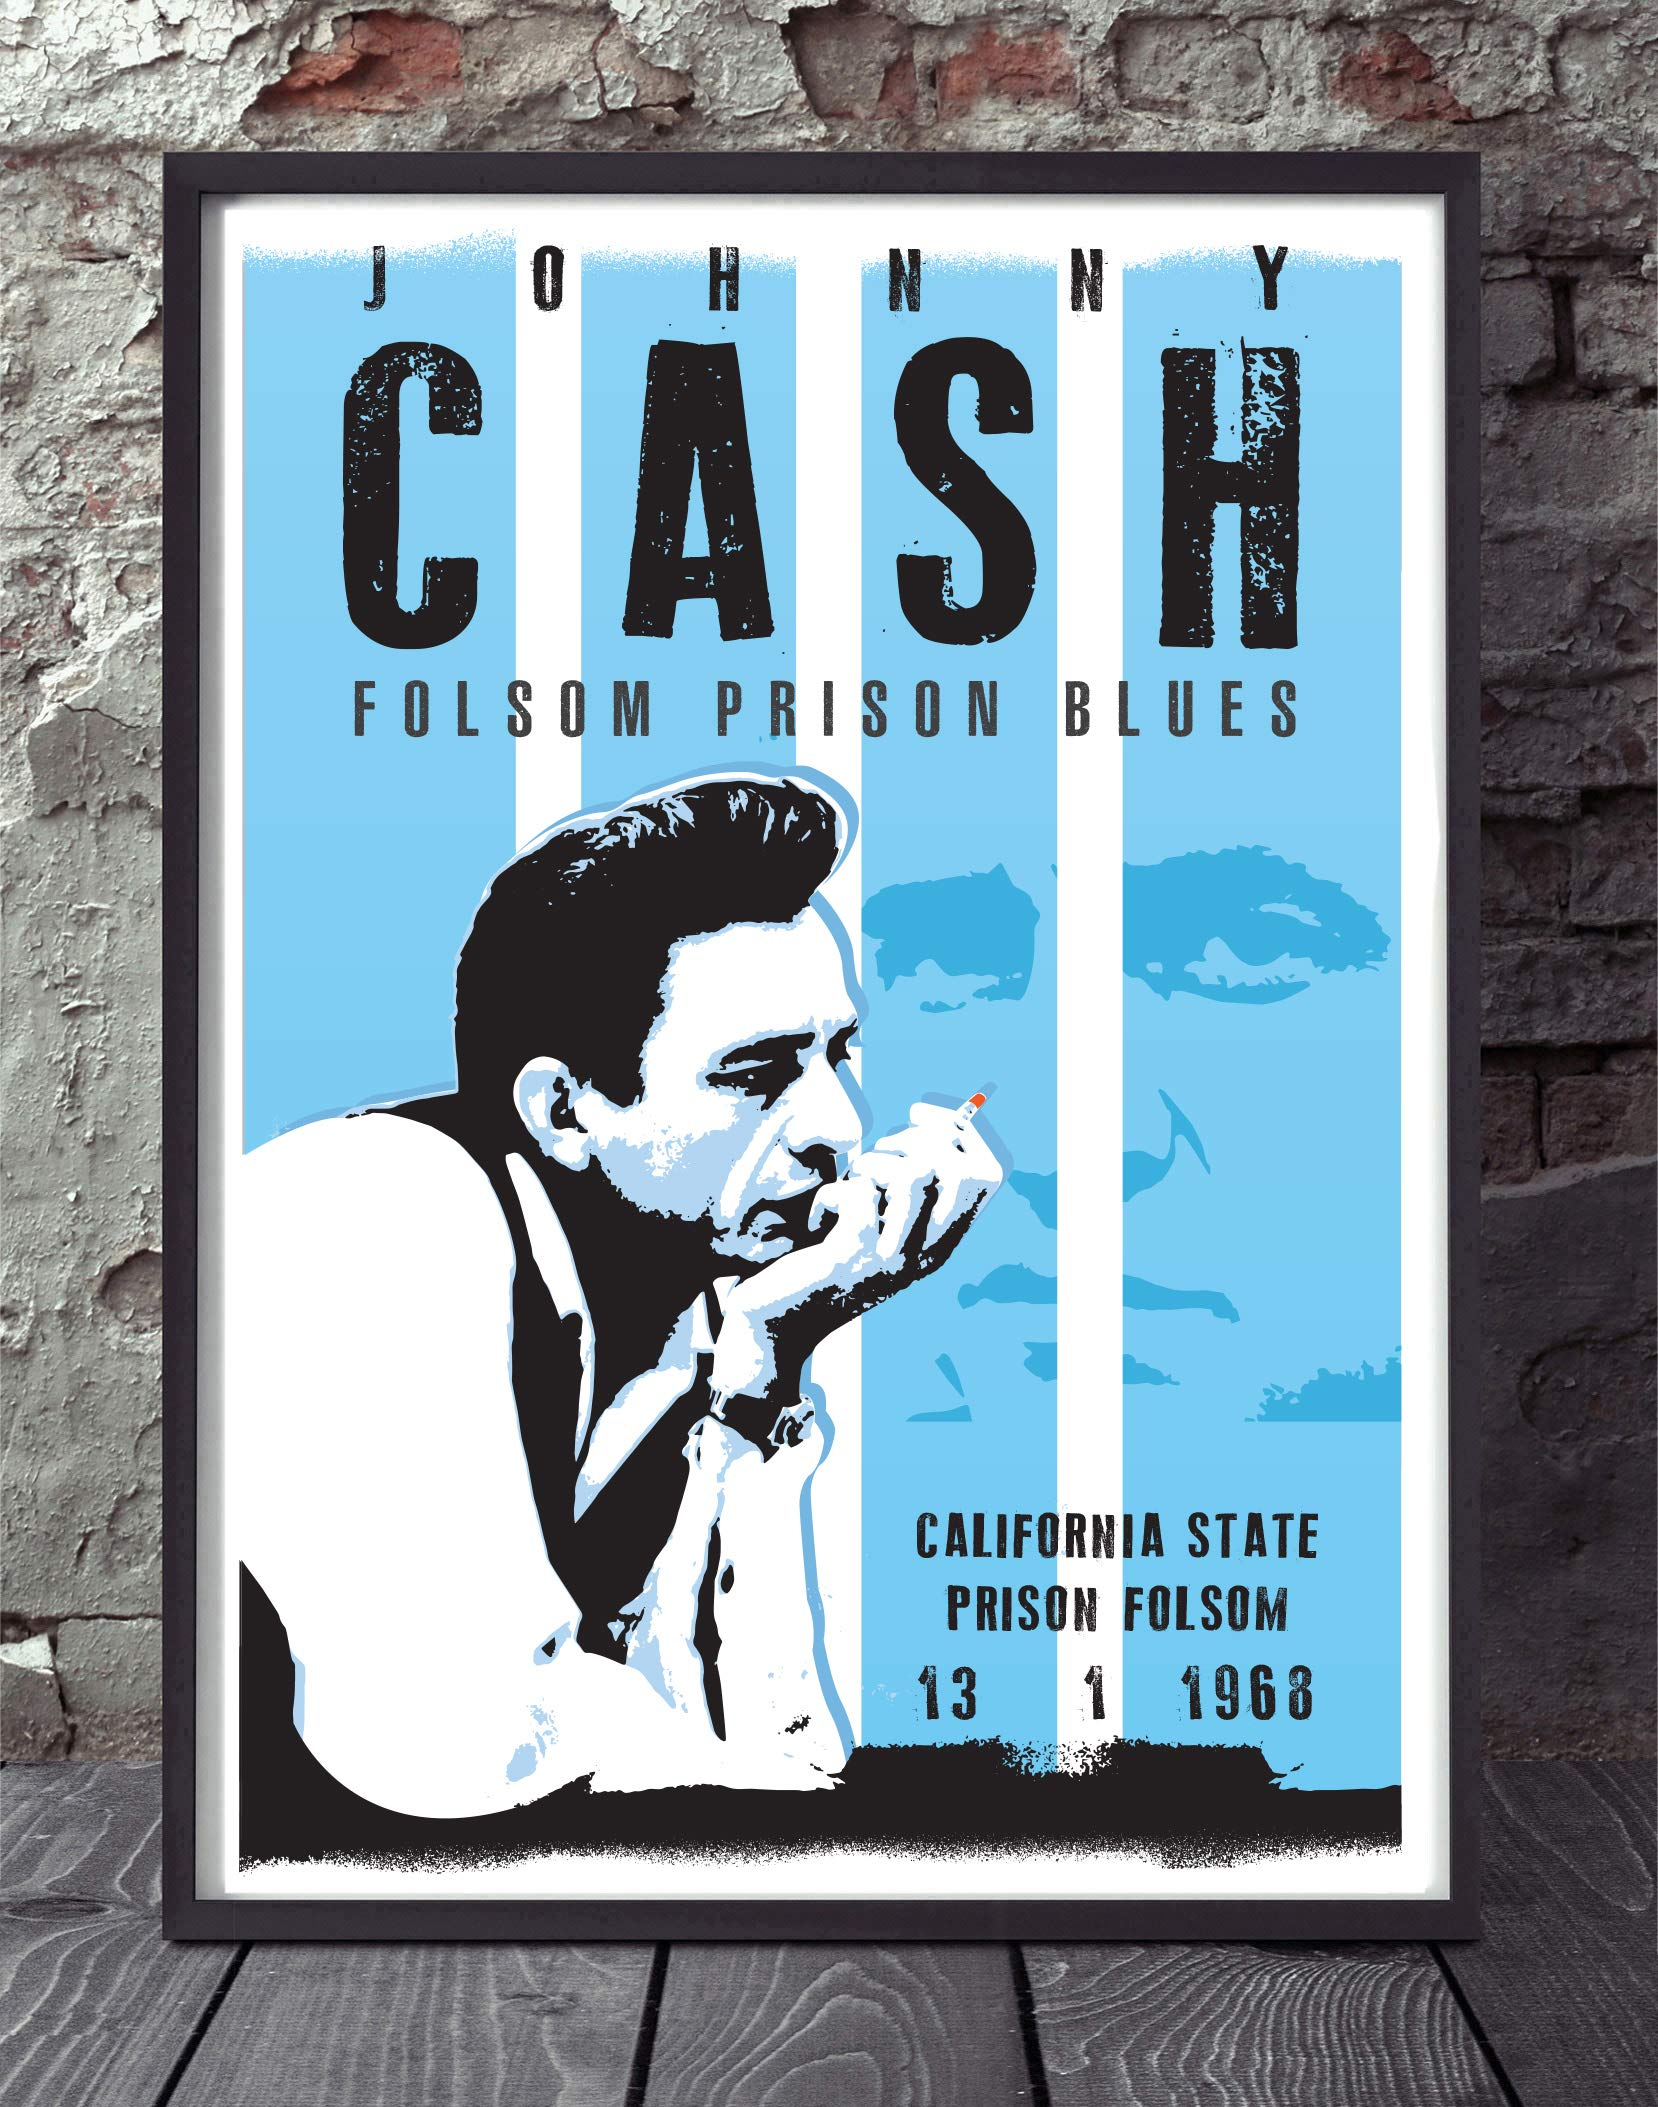 Johnny Cash music inspired art print poster. Re-imagined and specially created